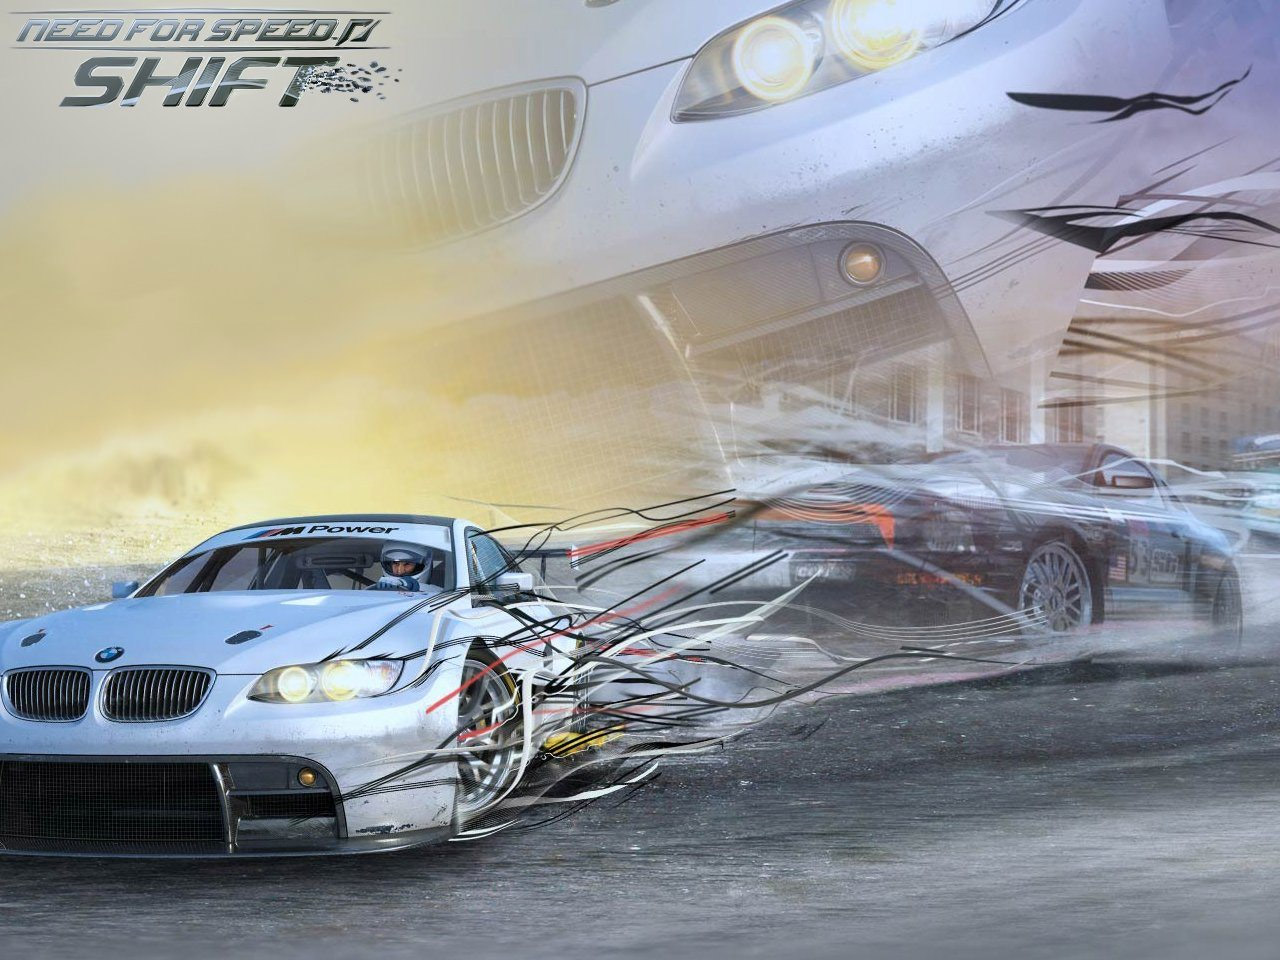 Need for Speed Shift 822.77 Kb